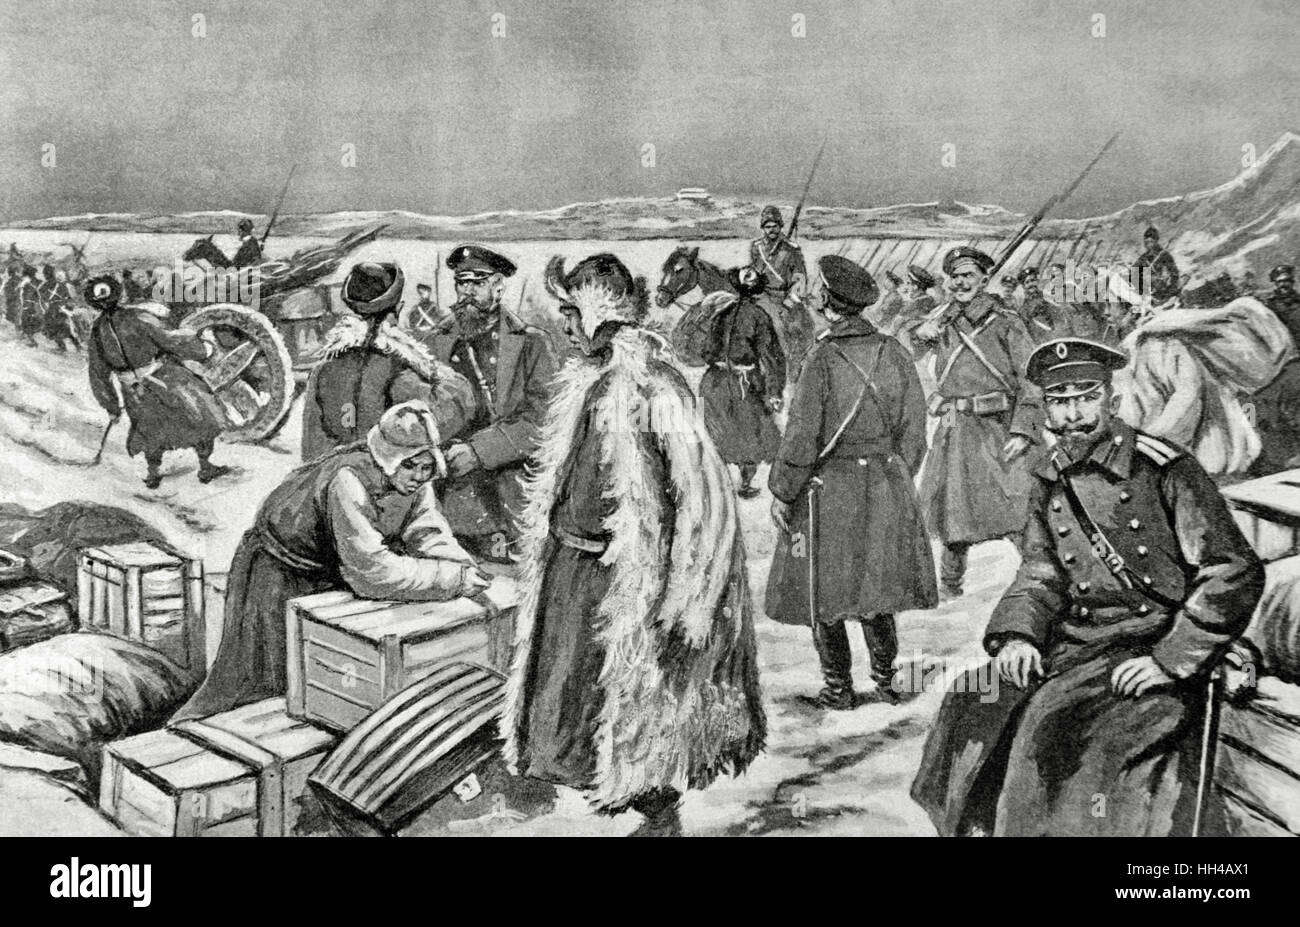 Russo-Japanese War (1904-1905). Russian army on the banks of the Yalu River, territory of Korea. Engraving. 'La - Stock Image